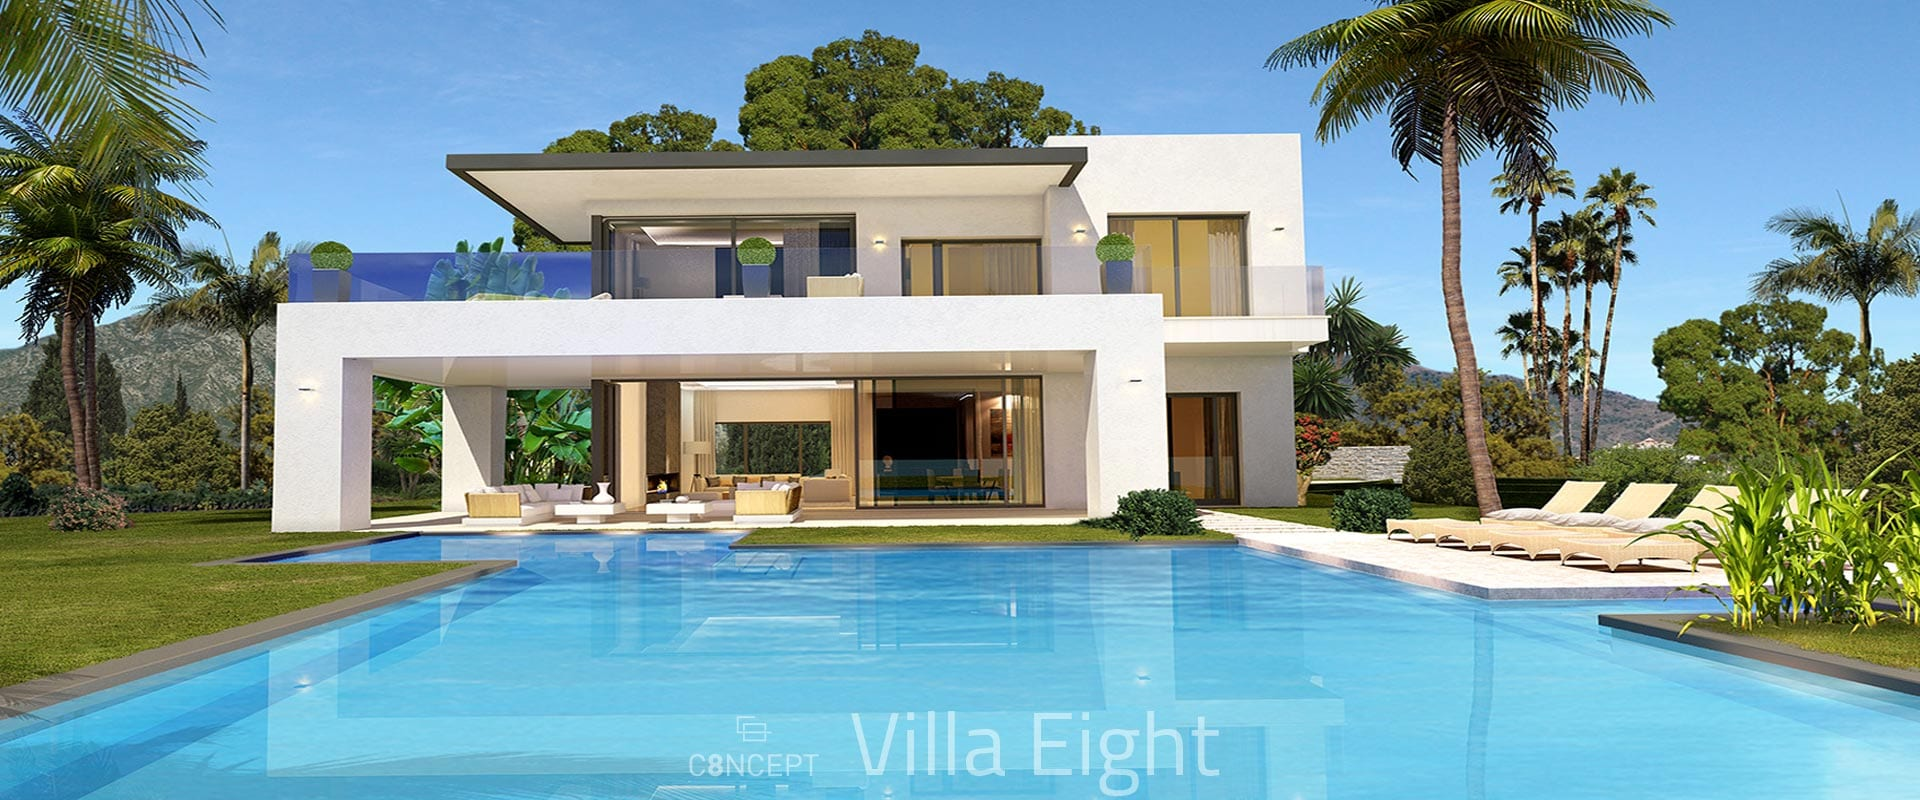 Golden Mile Marbella Small Gated Villa Community Offplan